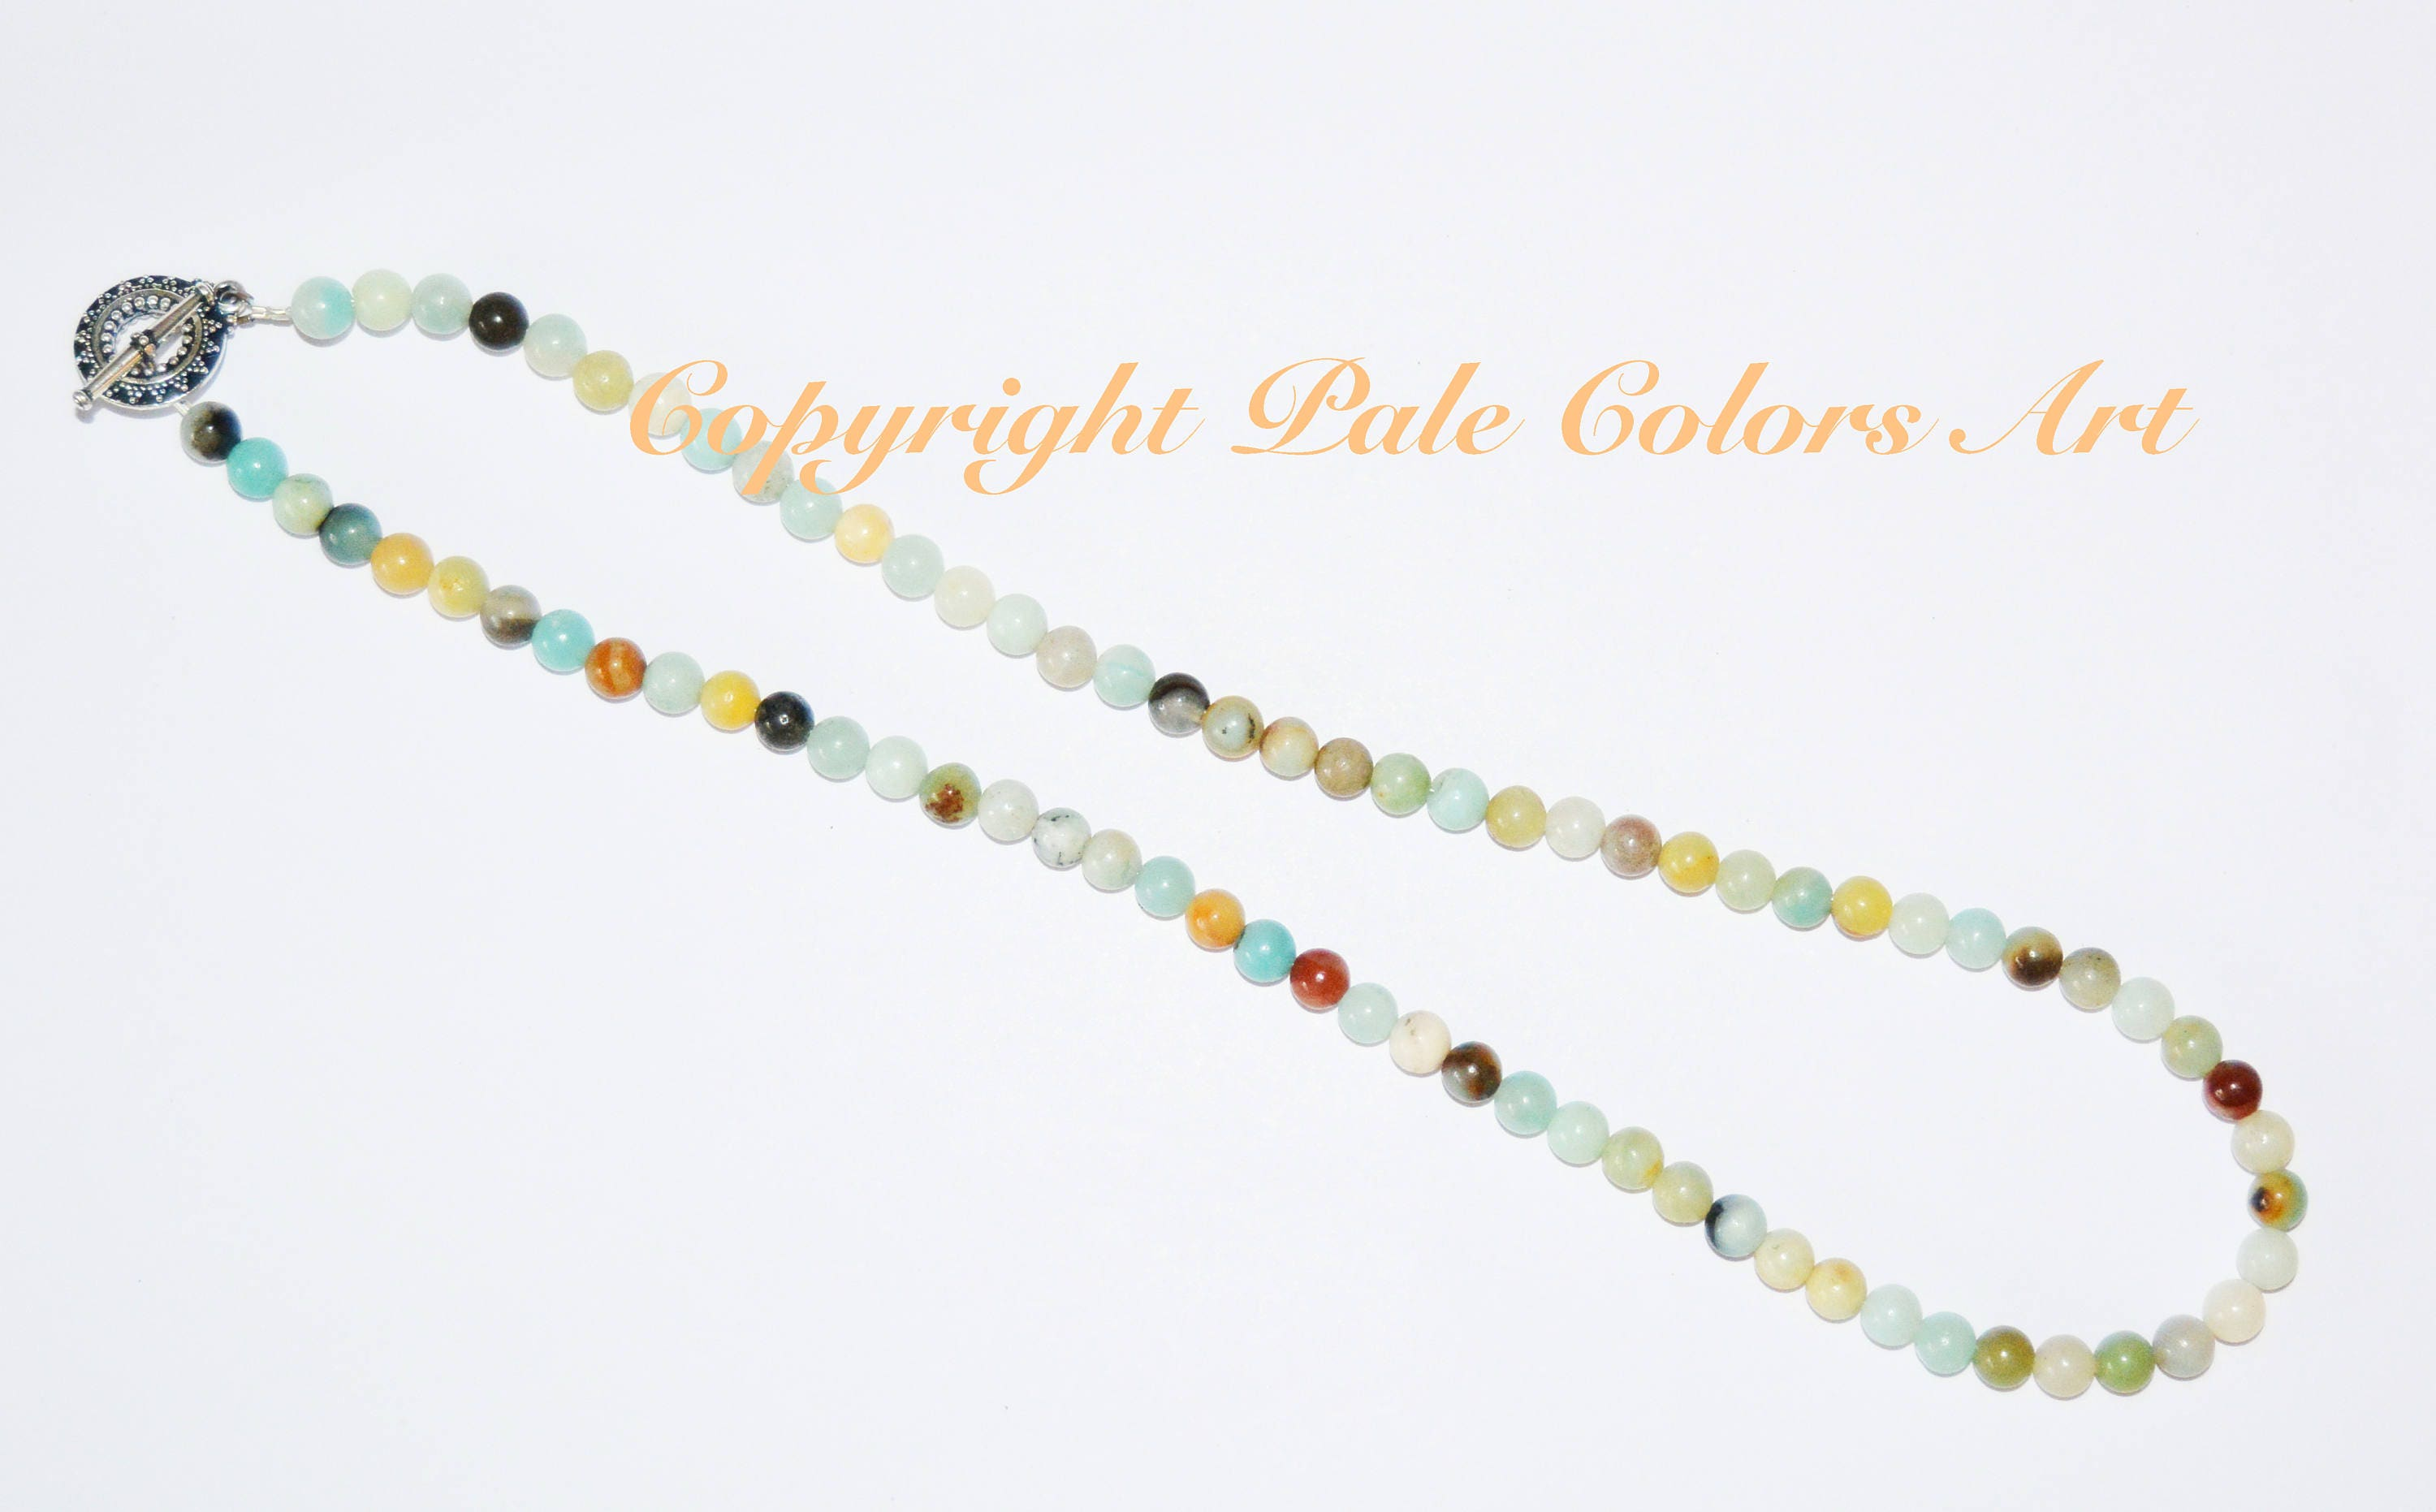 jasper etsy amazonite luxury signatures march by do thur over smith necklace christine photography jewelry